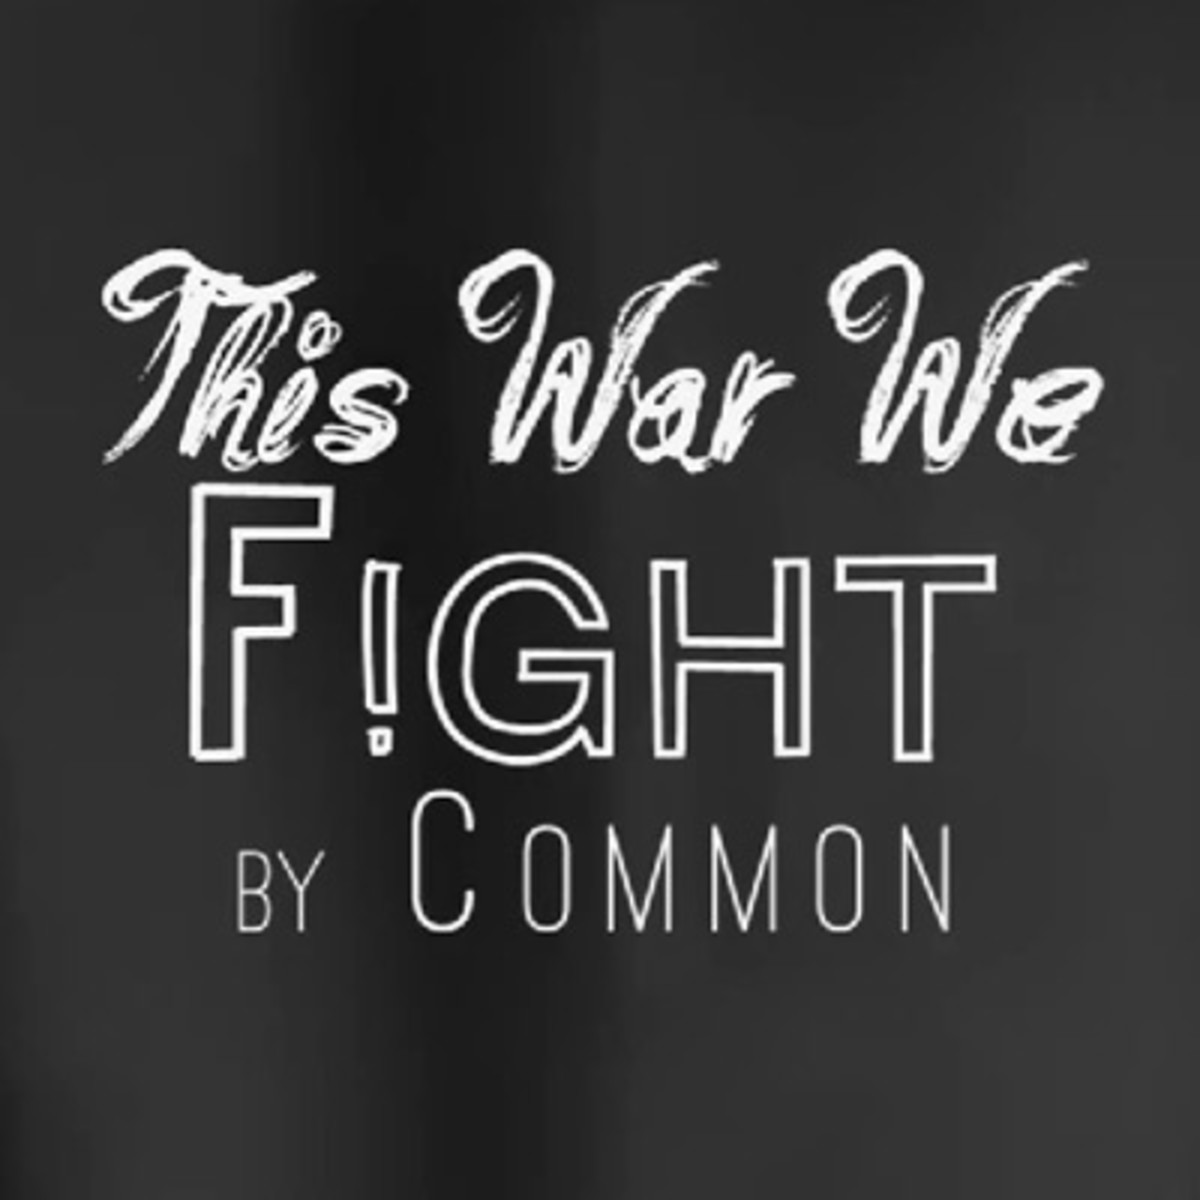 common-thiswarwefight.jpg